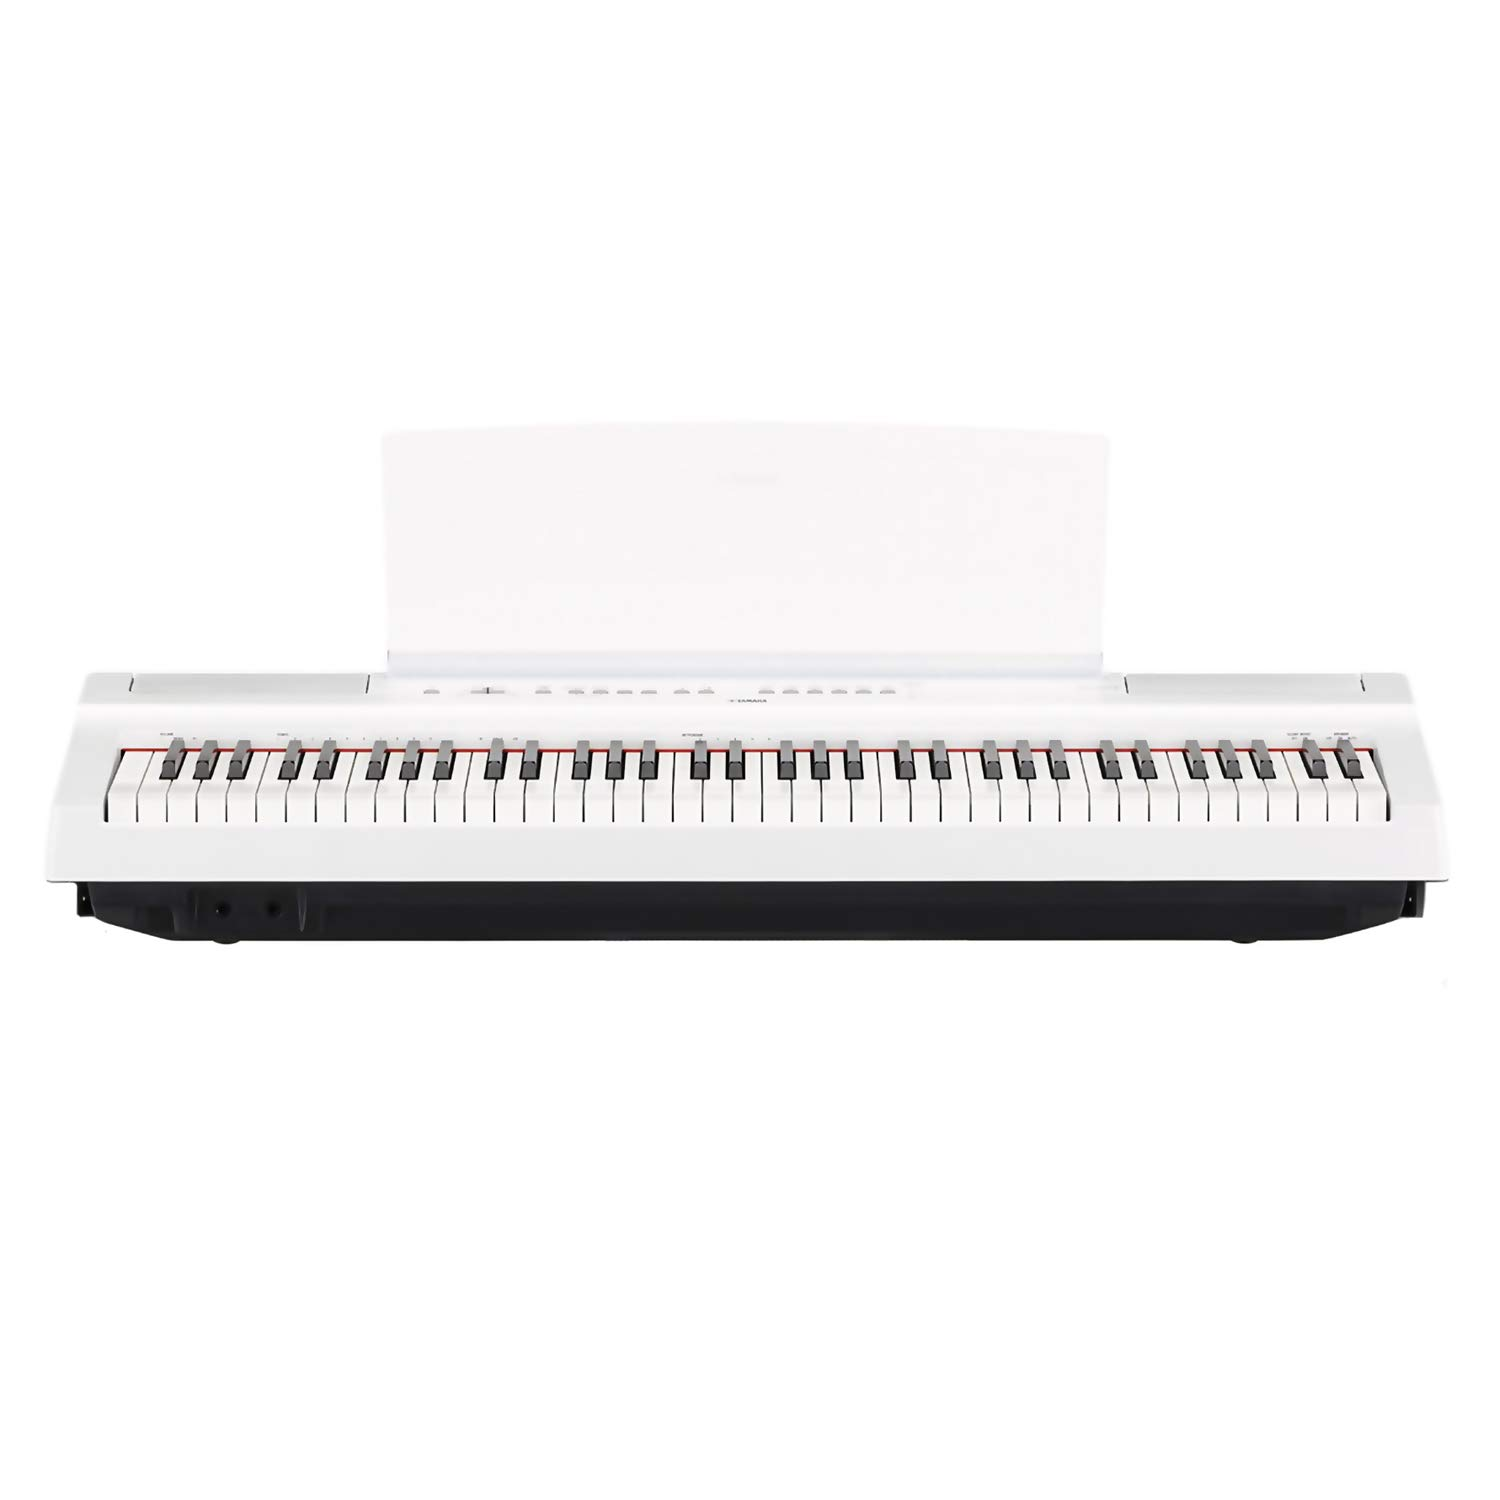 Yamaha P121 73-Key Weighted Action Digital Piano - White with Matching L121 White Furniture Stand and Bench by Yamaha Bundle (Image #3)